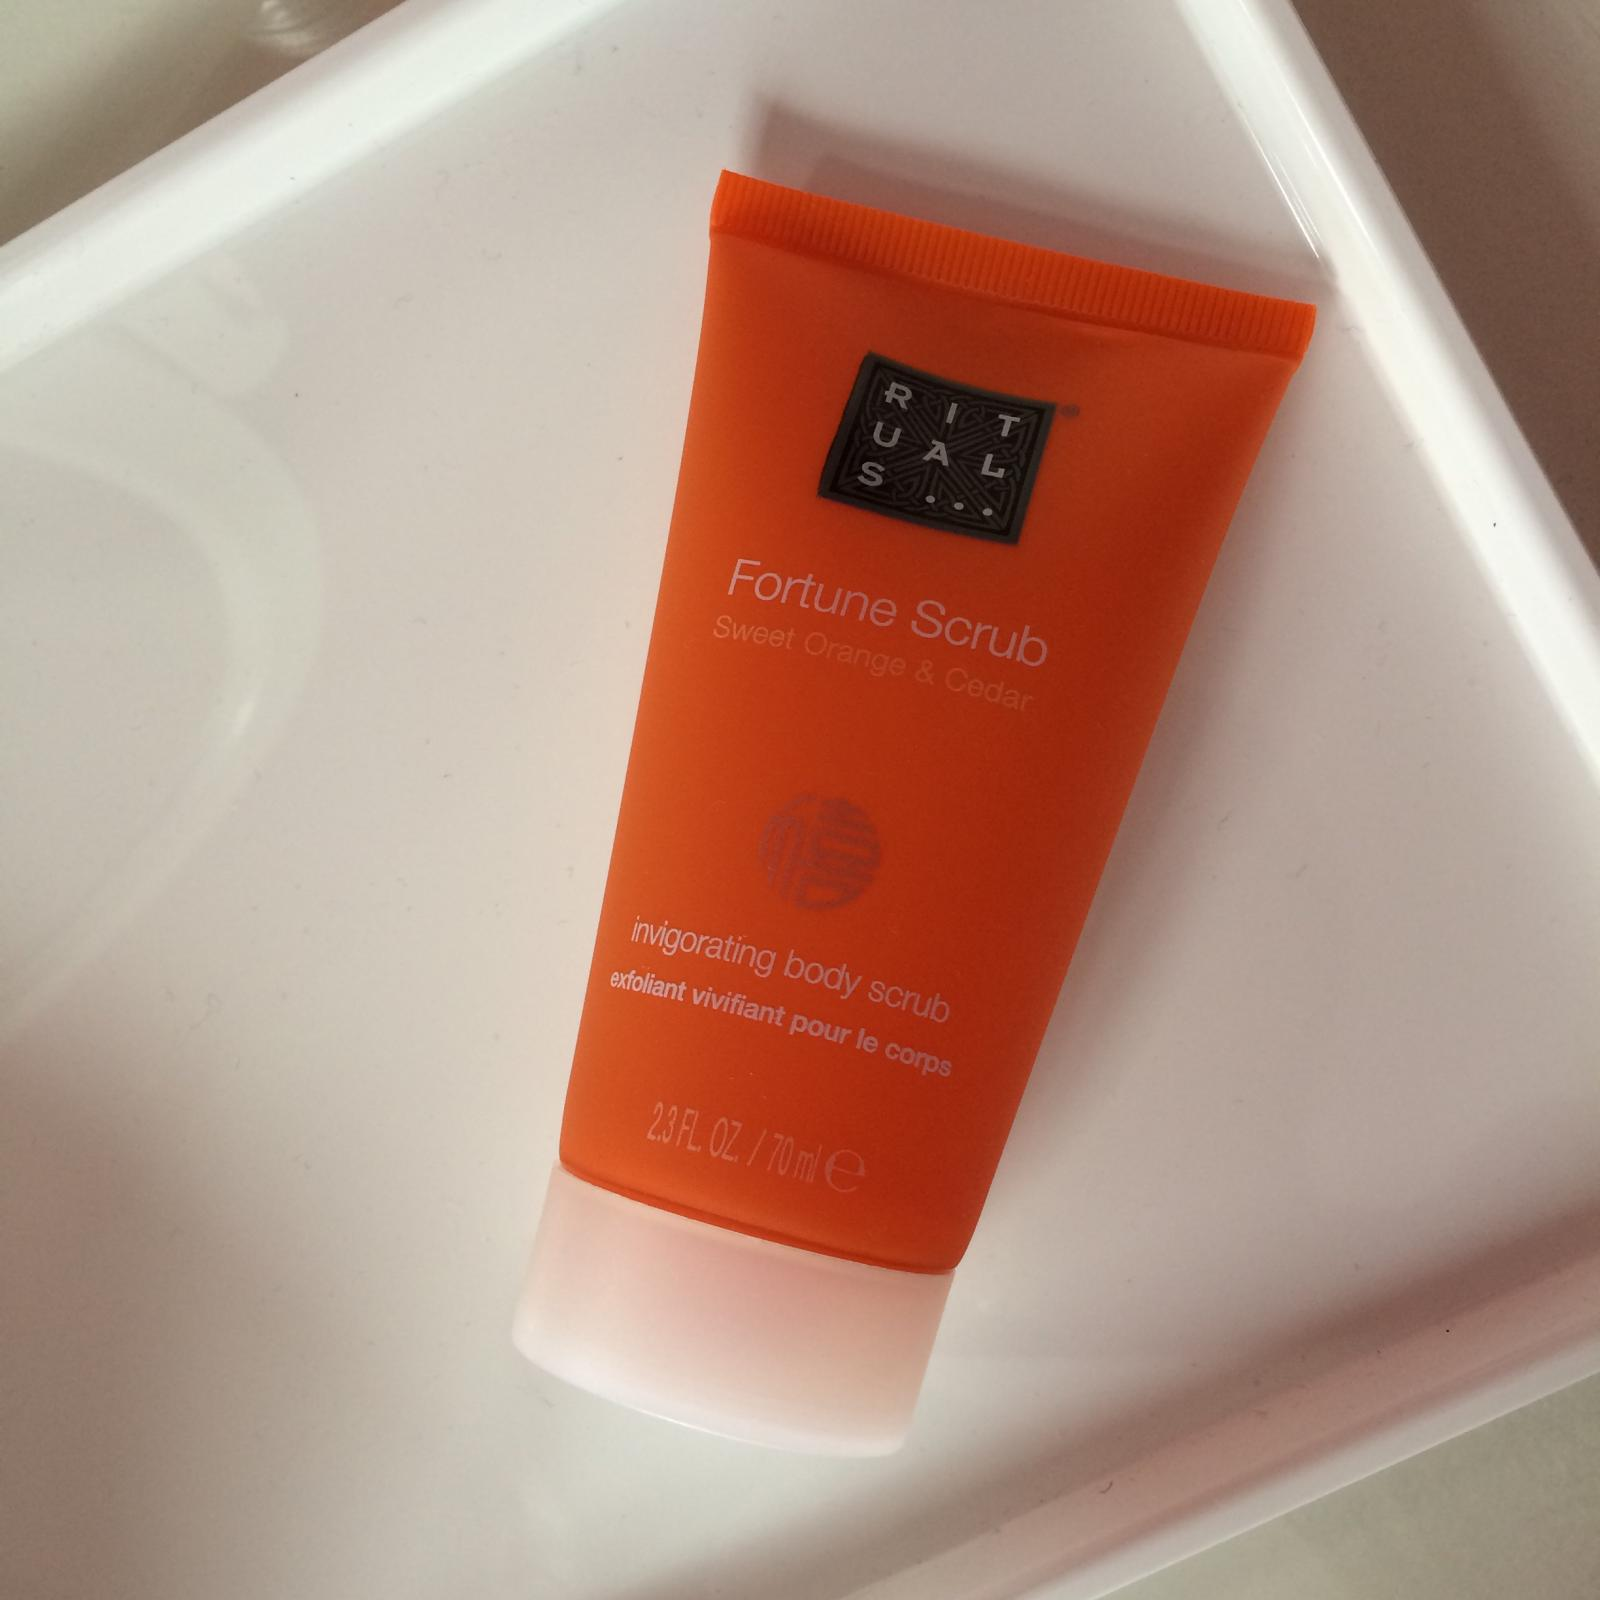 Rituals Fortune Body Scrub